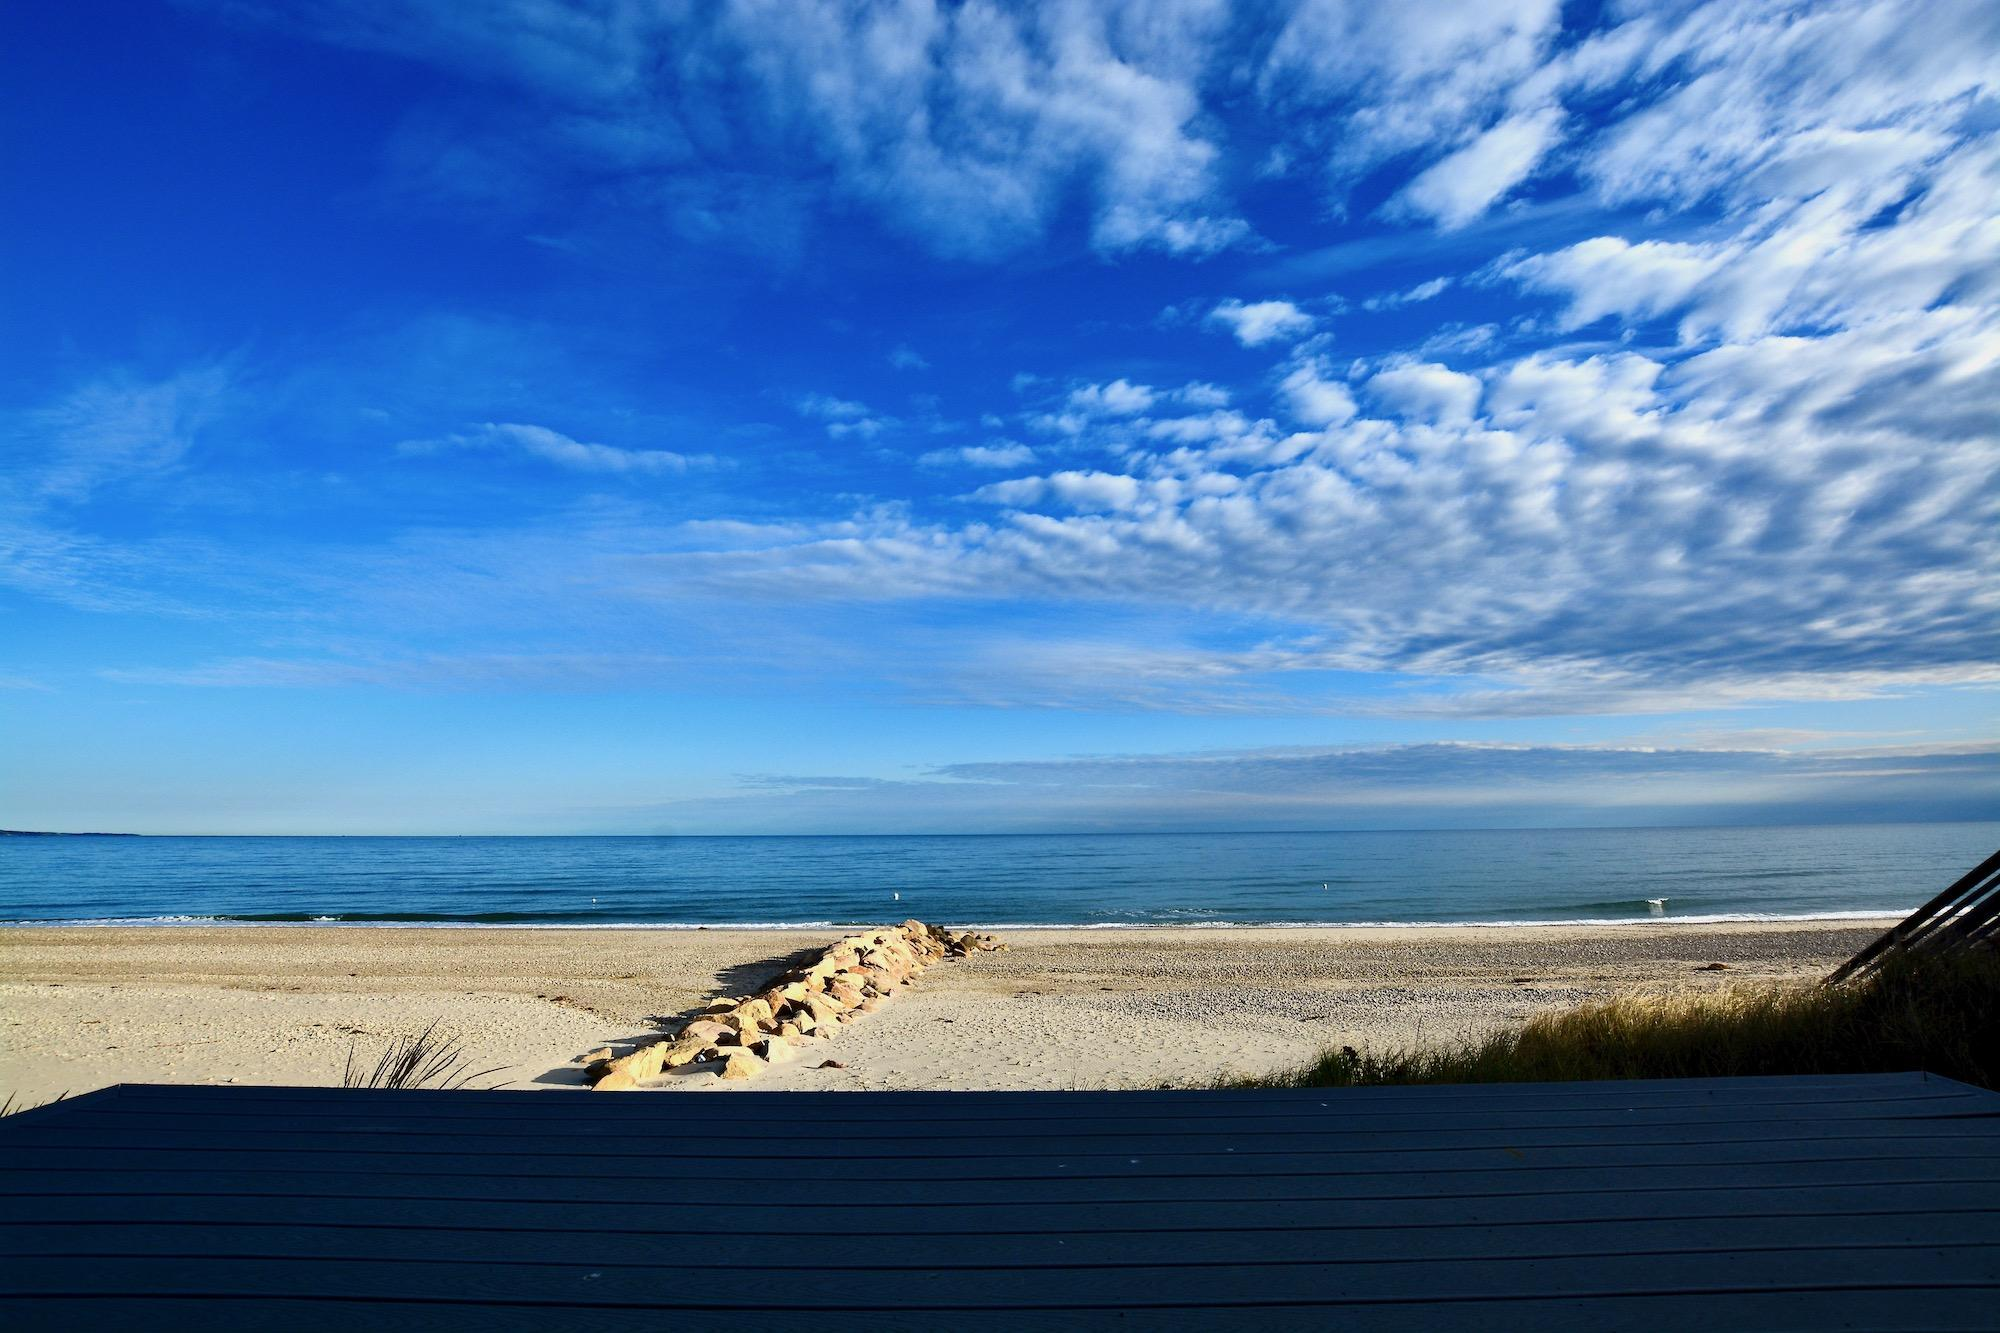 NEW CONSTRUCTION! Pre-completion custom Cape Cod Bay Beachfront property sitting atop the refined white sands north of historic RT 6A. Nestled in the dunes await's this idilic cape cottage style 2 bedroom, 2.5 bath waterfront home. Surround yourself in high end craftsmanship and detail as you glide through the open floor plan, humbled by the surreal long views. Tantalize the senses as you enter the great room with solid hardwood floors encapsulated by classically elegant wainscoting, stunning natural quartz and shimmering stainless appliances. Witness one of the most brilliantly majestic sunsets as it melts into the calming bay waters from your master bedroom roof deck, three season porch bar, expansive first floor azek deck, or fire-side on your private beach with toes in the sand. Amongst the backdrop of the bay, warm your body and soul in front of the field stone gas fireplace. Catch yourself as your eyes are continuously drawn to the artisan details of the custom constructed ceilings. This location warrants ones deep appreciation for the cape, its natural beauty and elegance. Investors take note of the rental potential a property of this magnitude can generate.